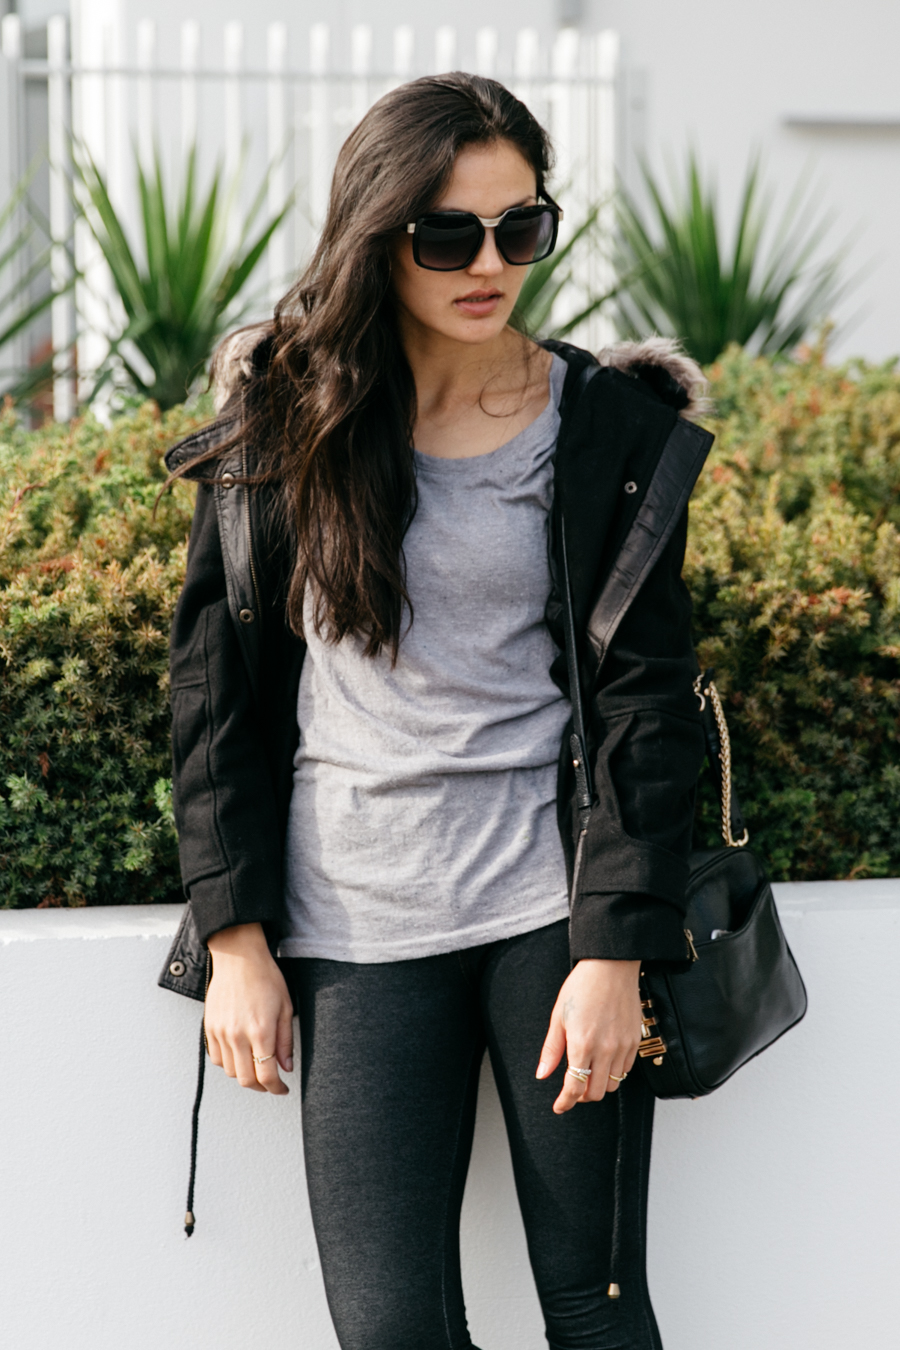 ZeroUV sunglasses. Izabel London blogger outfit. Fur hood, drawstring parka. Winter street style in Mandurah.